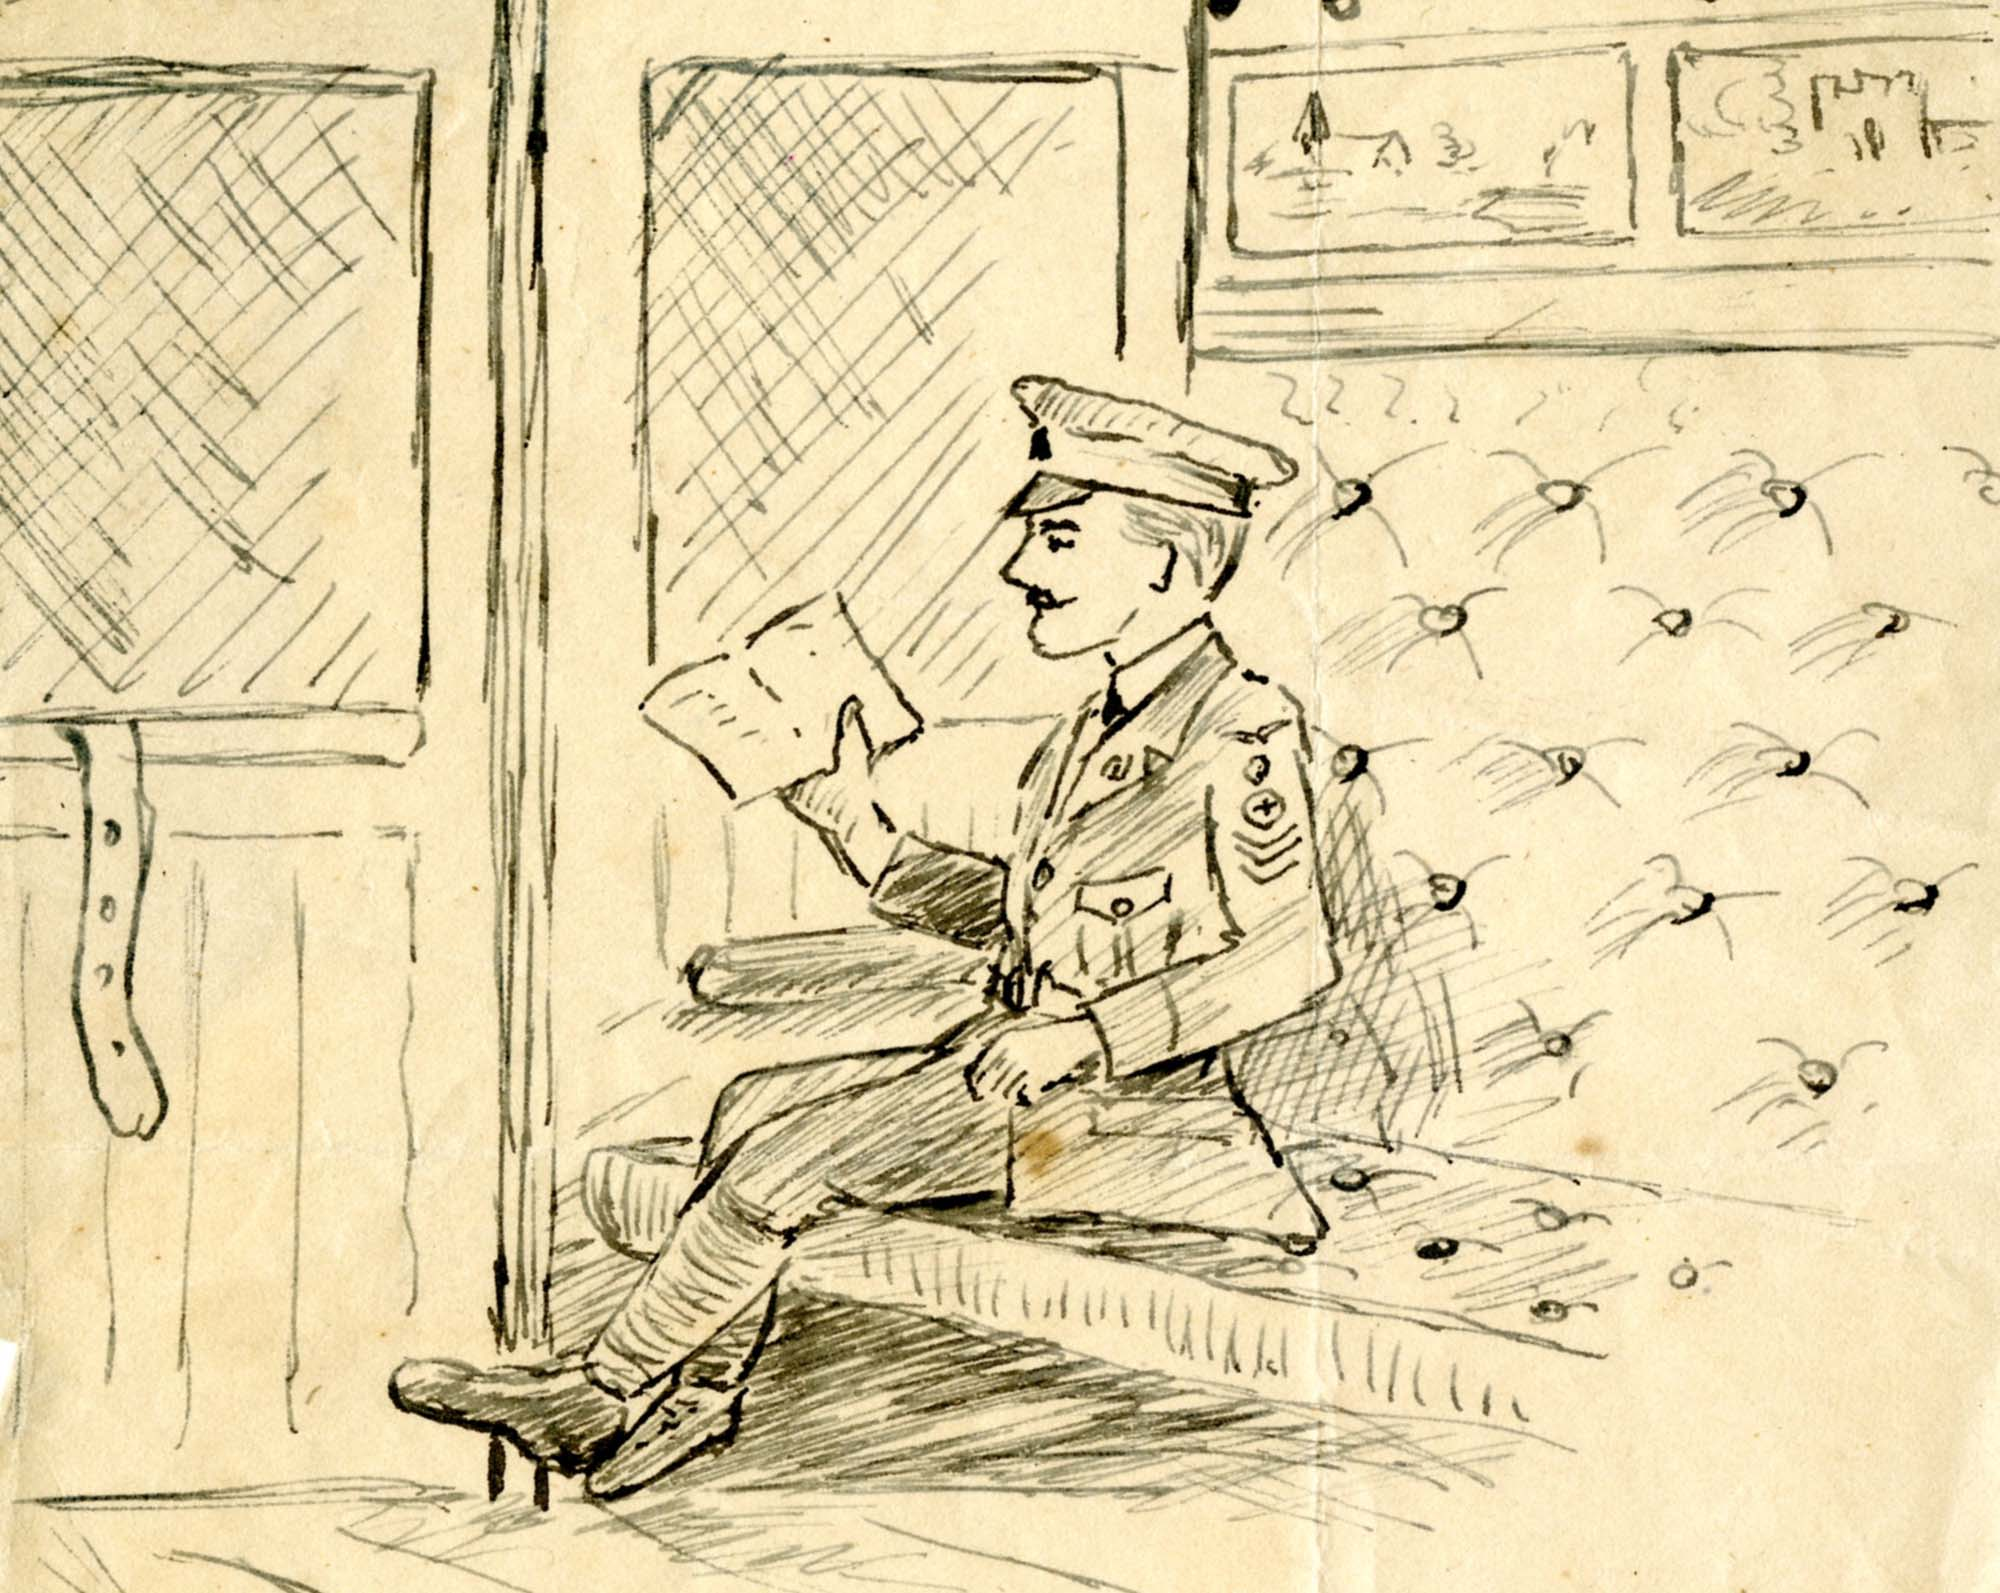 a drawing of a soldier reading a paper on a train